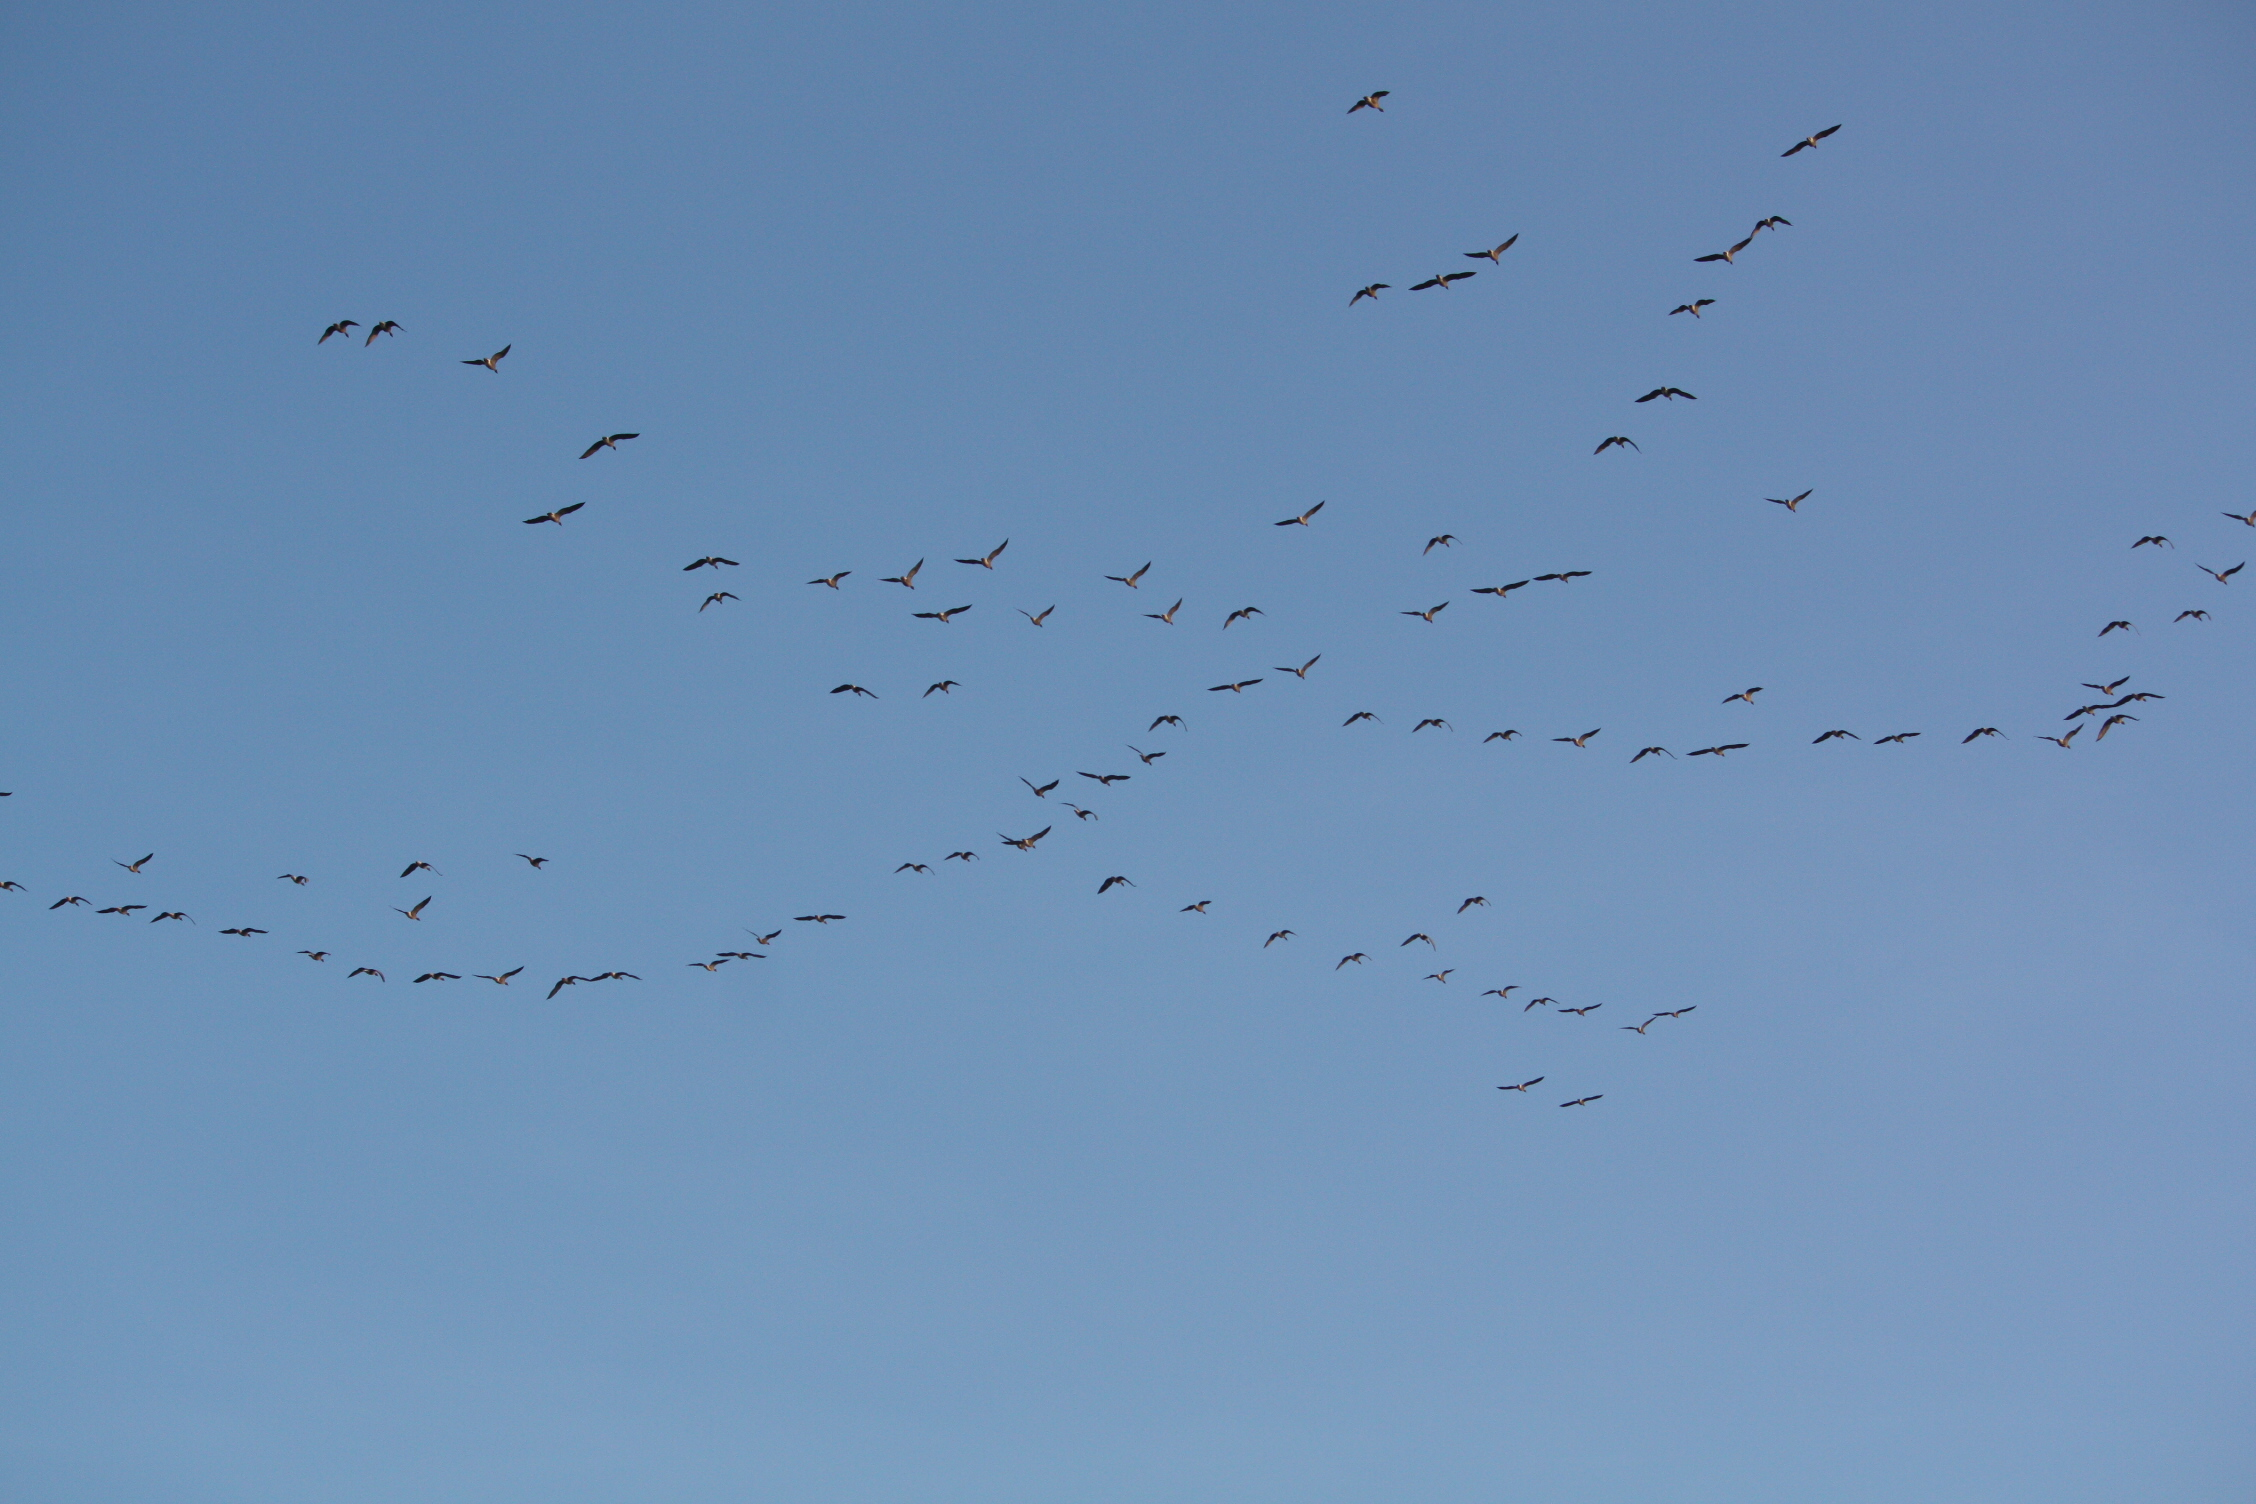 Large numbers of Canada Geese flying inland at the end of the afternoon.